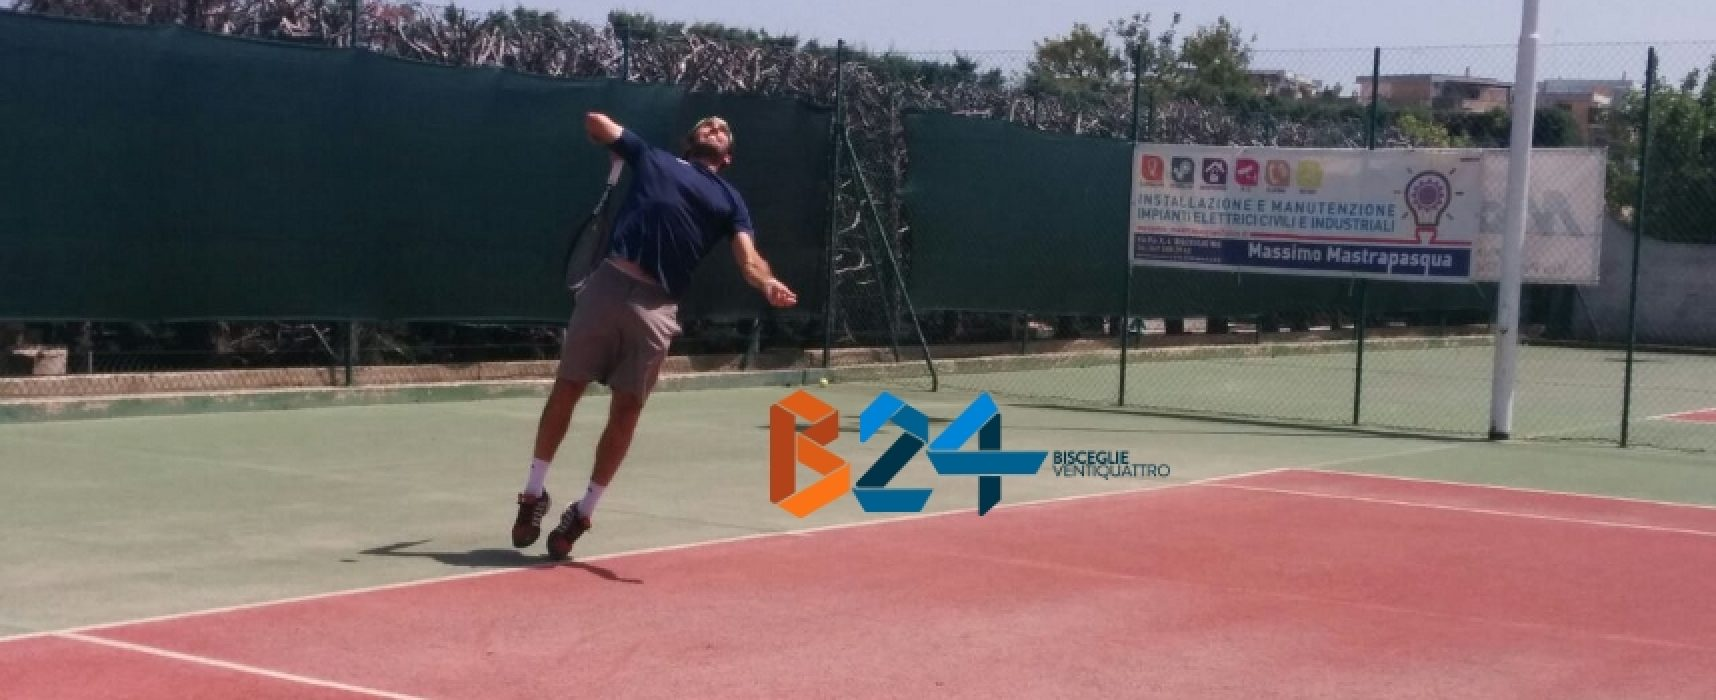 Tennis, serie B: Sporting Club sconfitto e costretto a disputare i play out